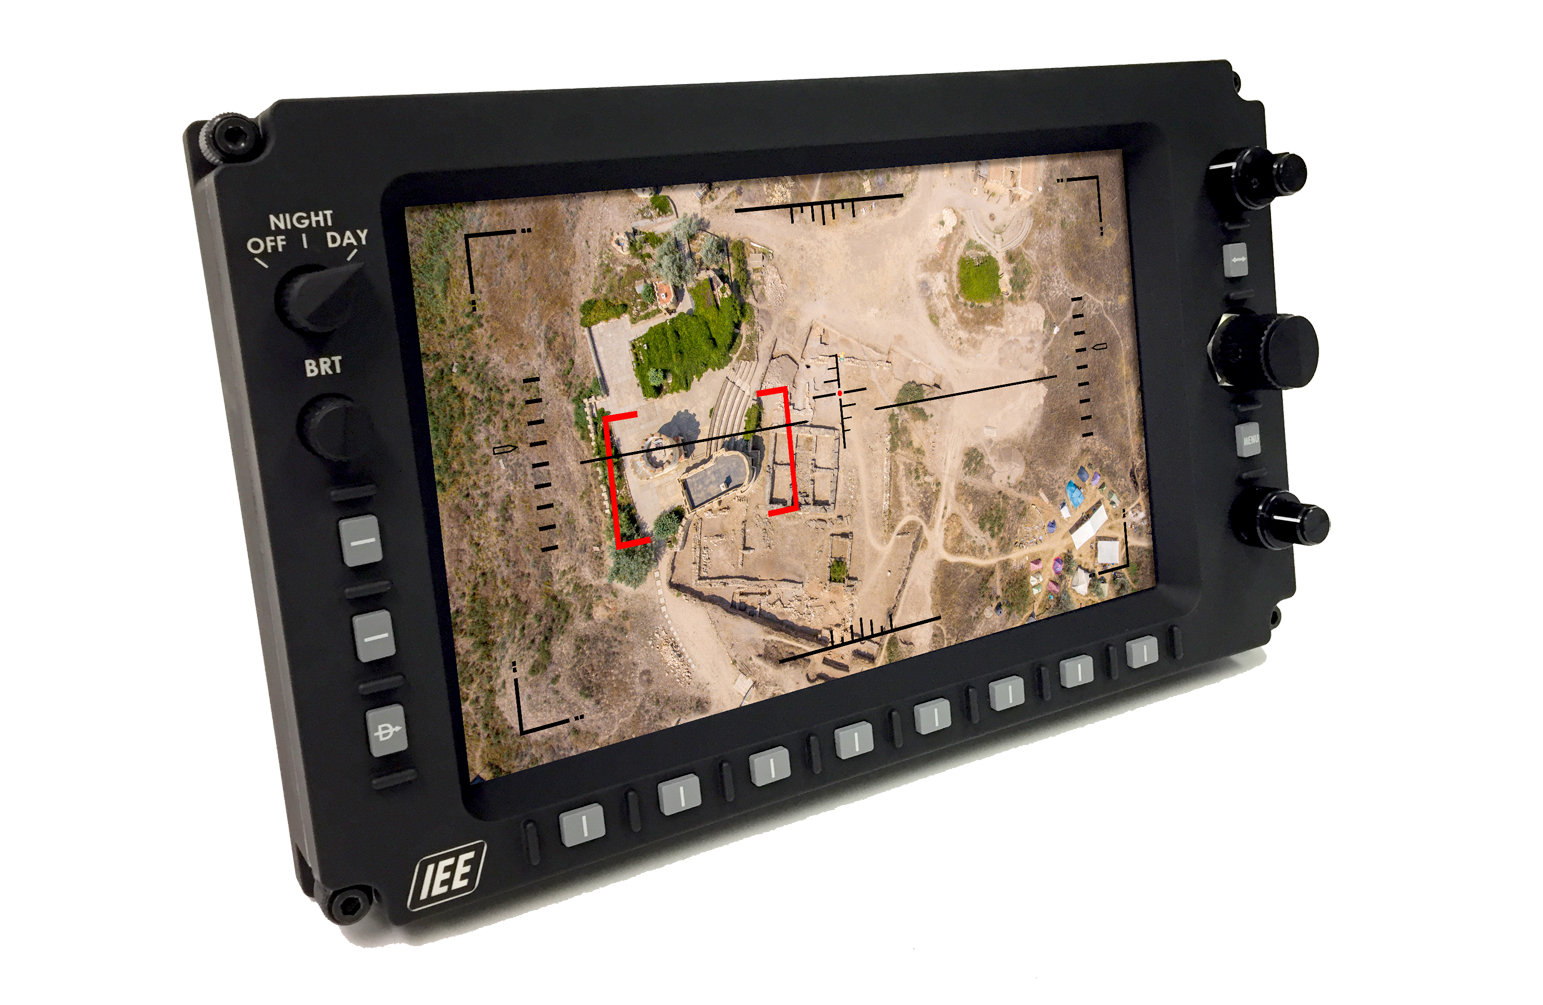 10.1 inch WUXGA rugged display subassembly